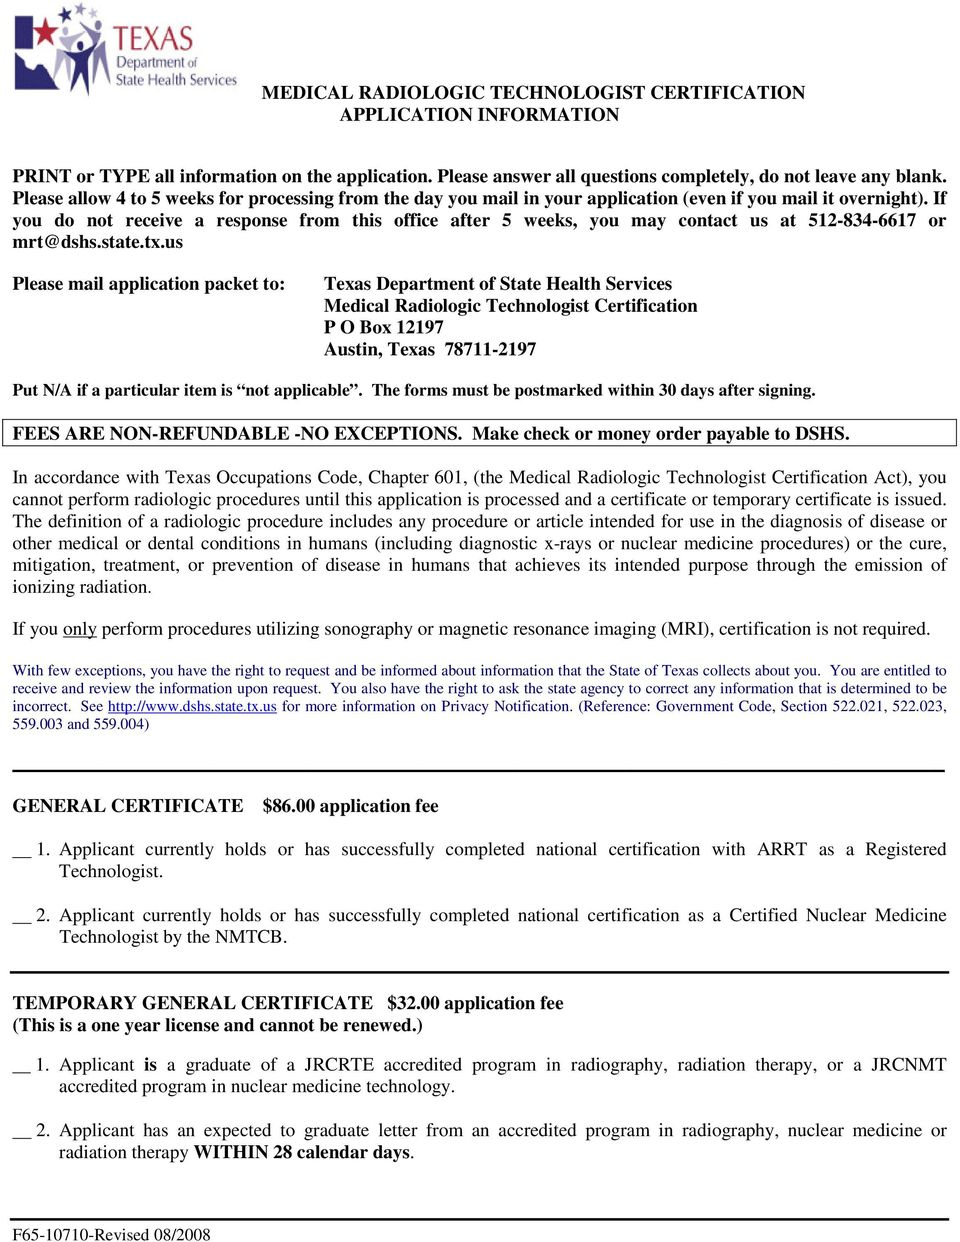 Medical Radiologic Technologist Certification Application